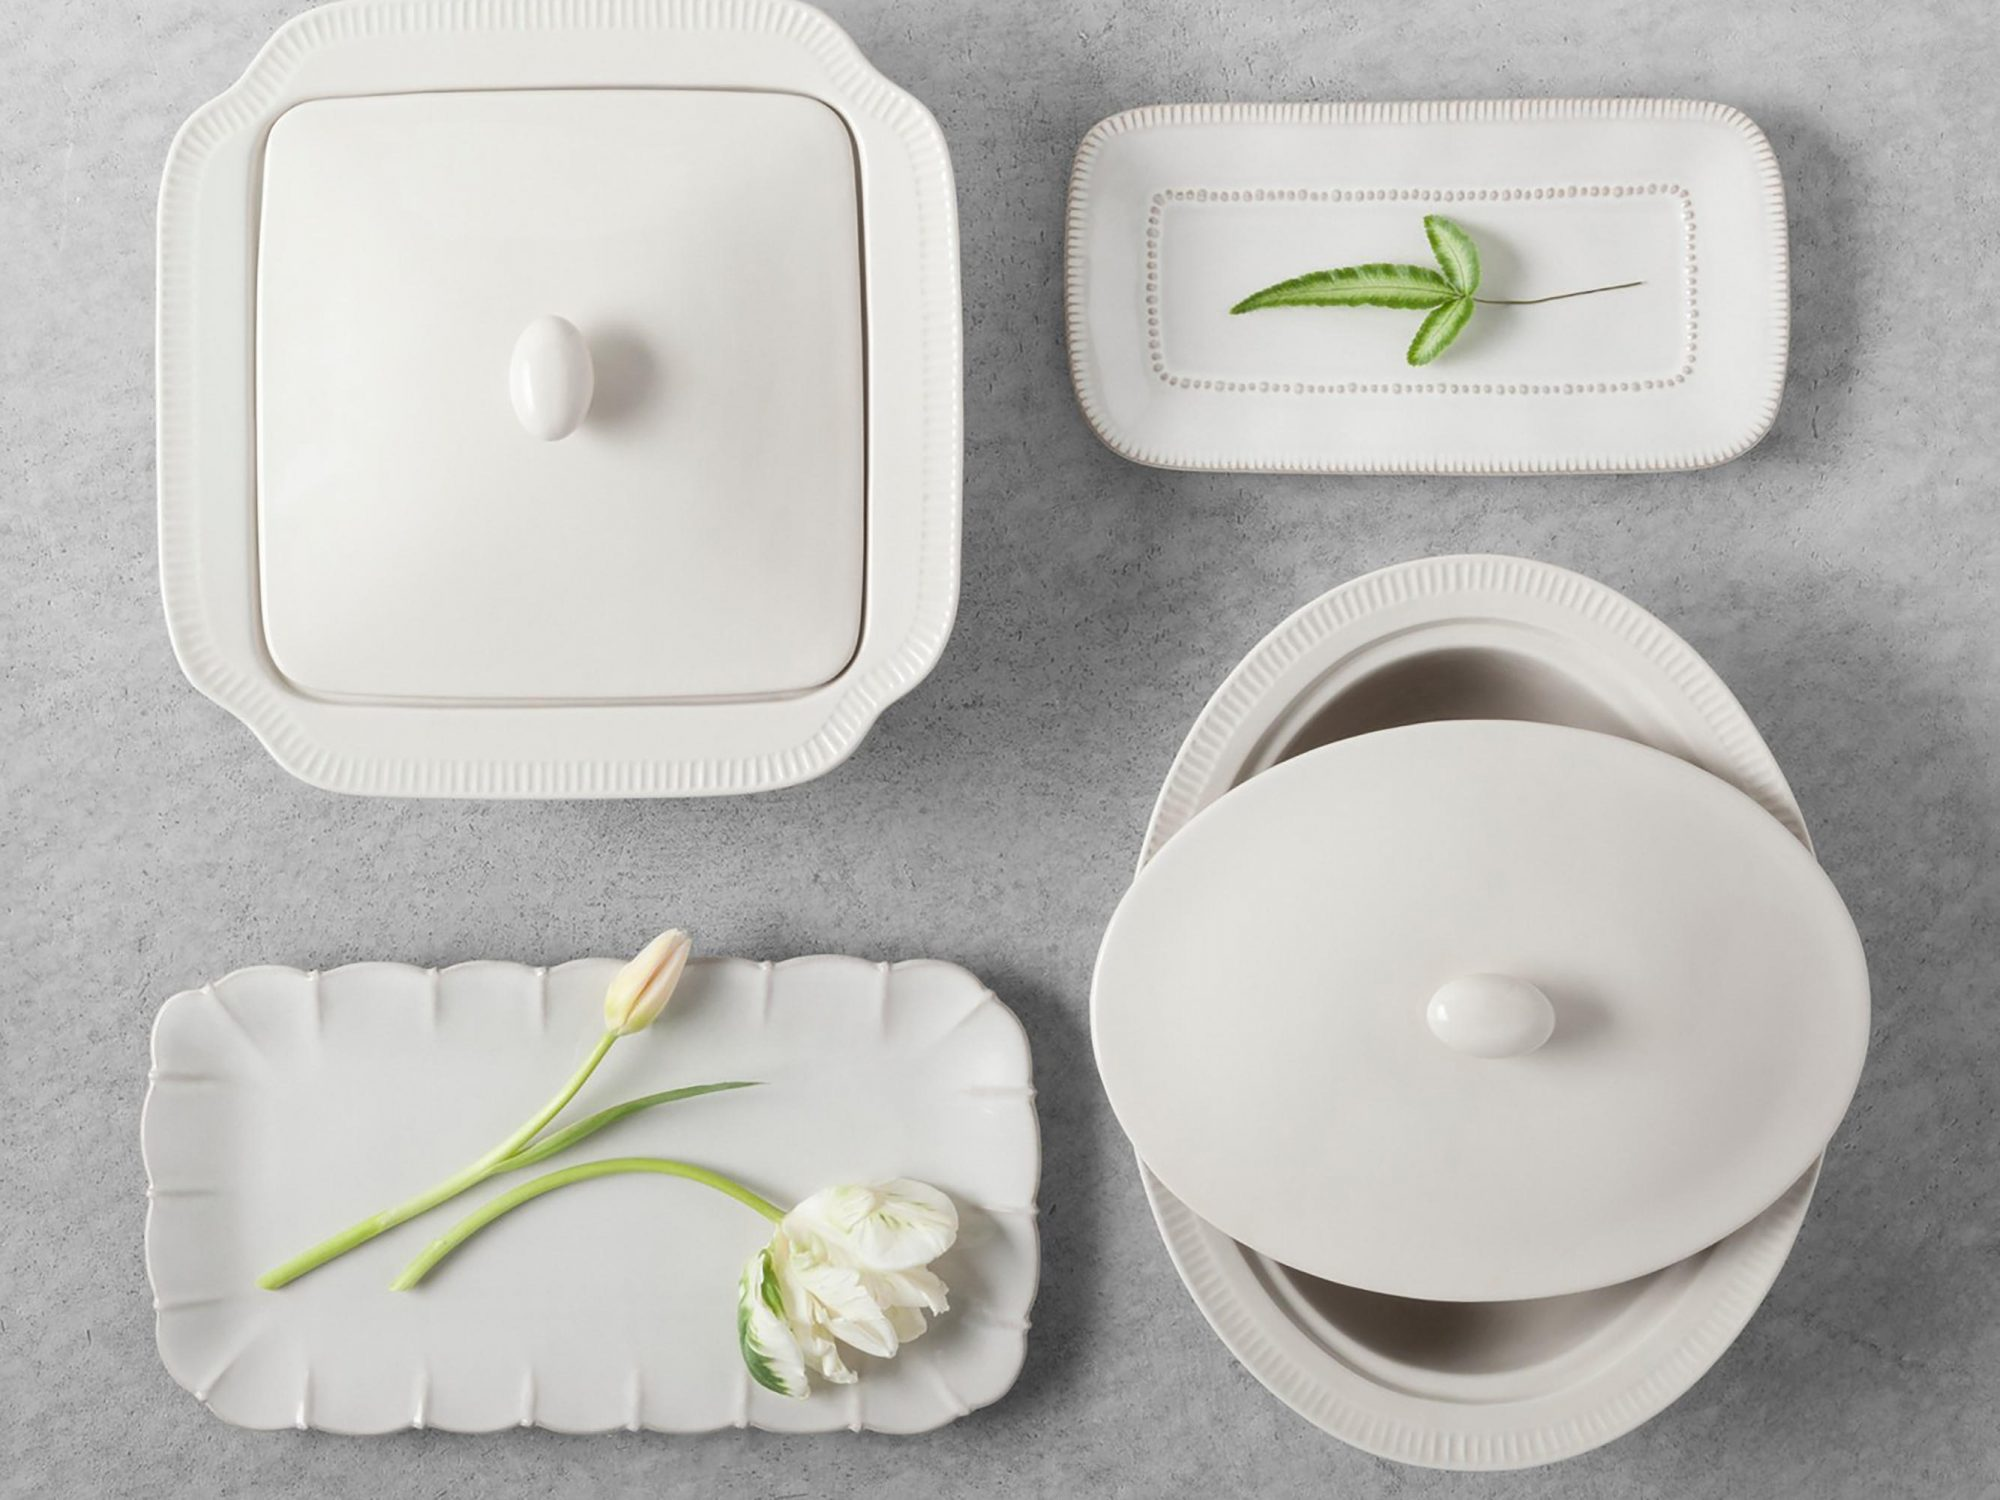 5 of Our Favorite Kitchen Buys From Joanna and Chip's Target Collection 1804w-Target-Joanna-Casserole